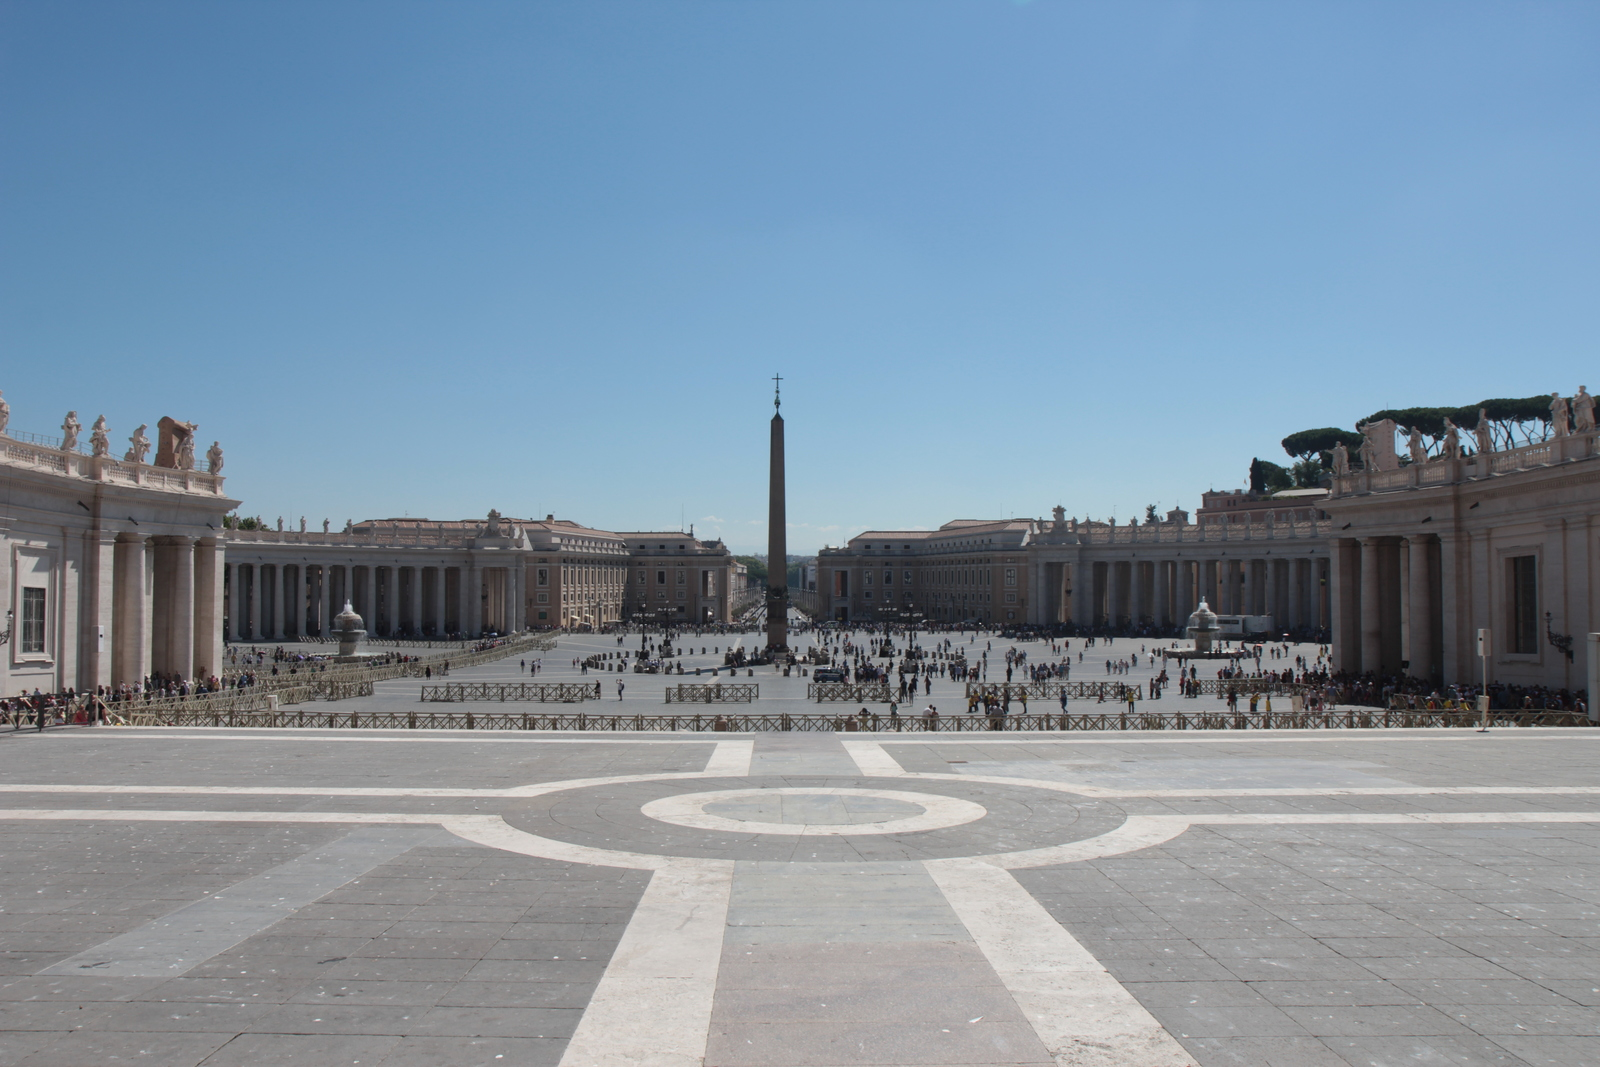 St. Peter's Square, Vatican City.